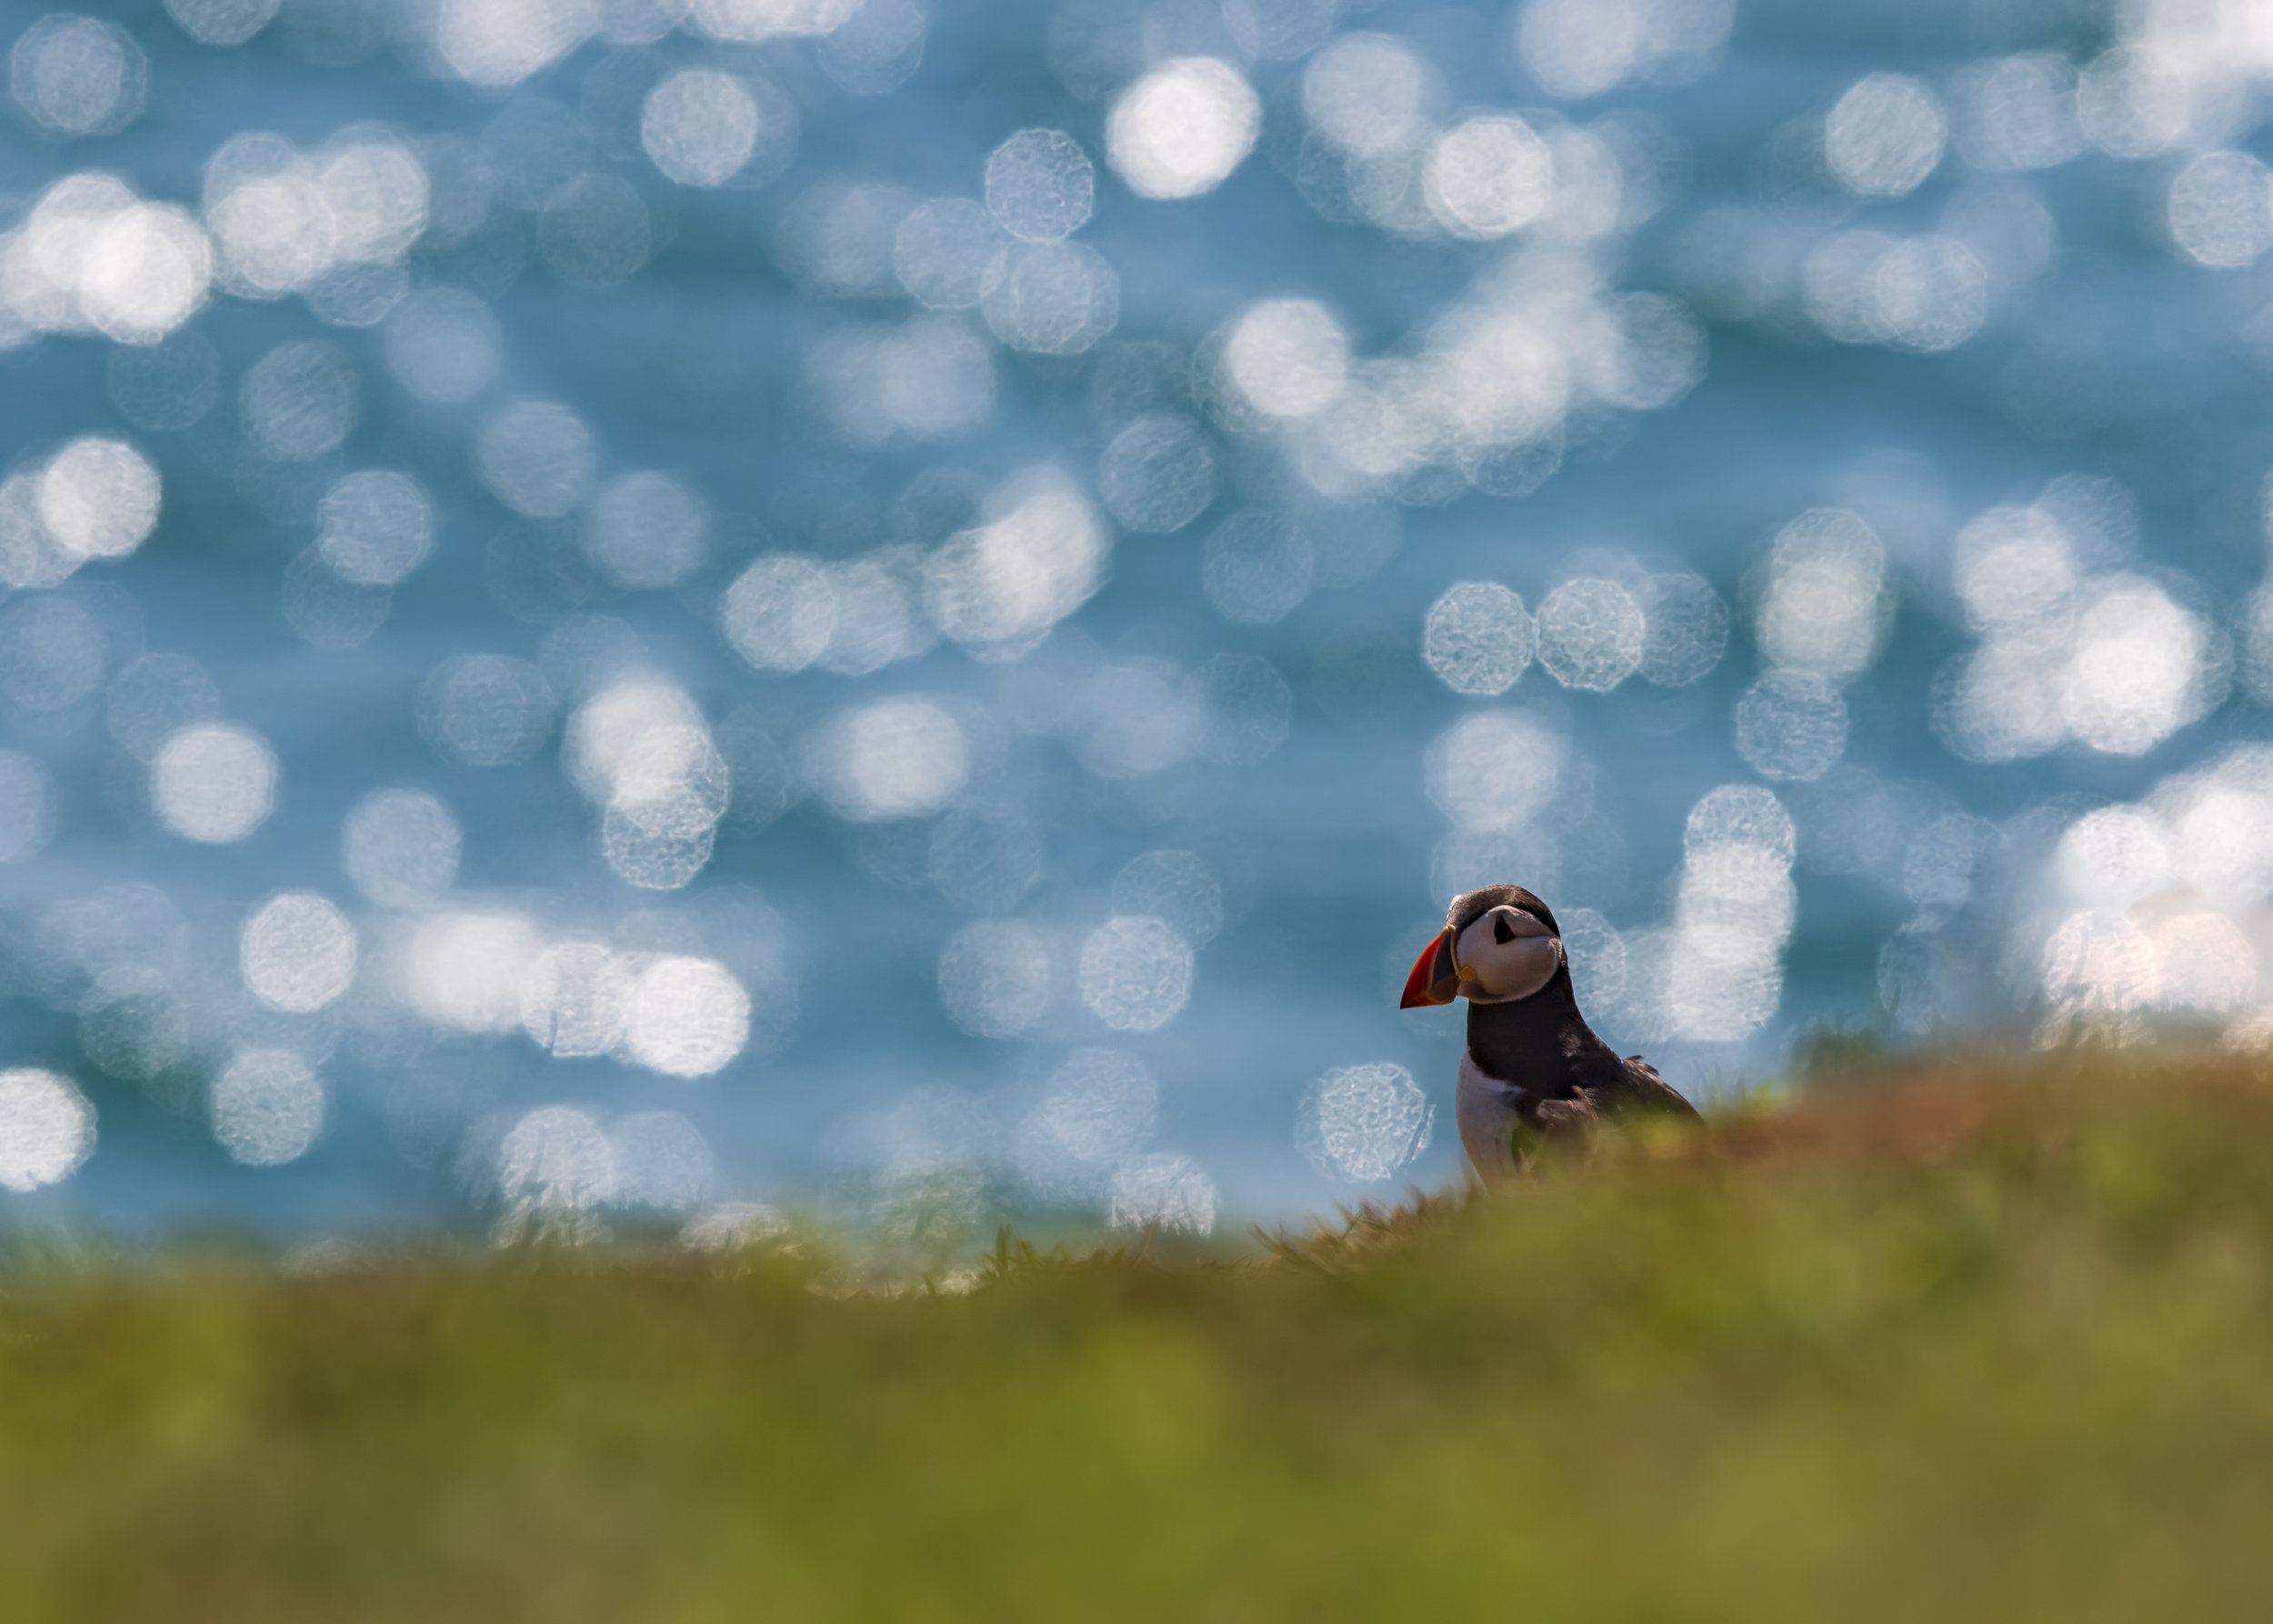 Puffin Blackit Bokeh